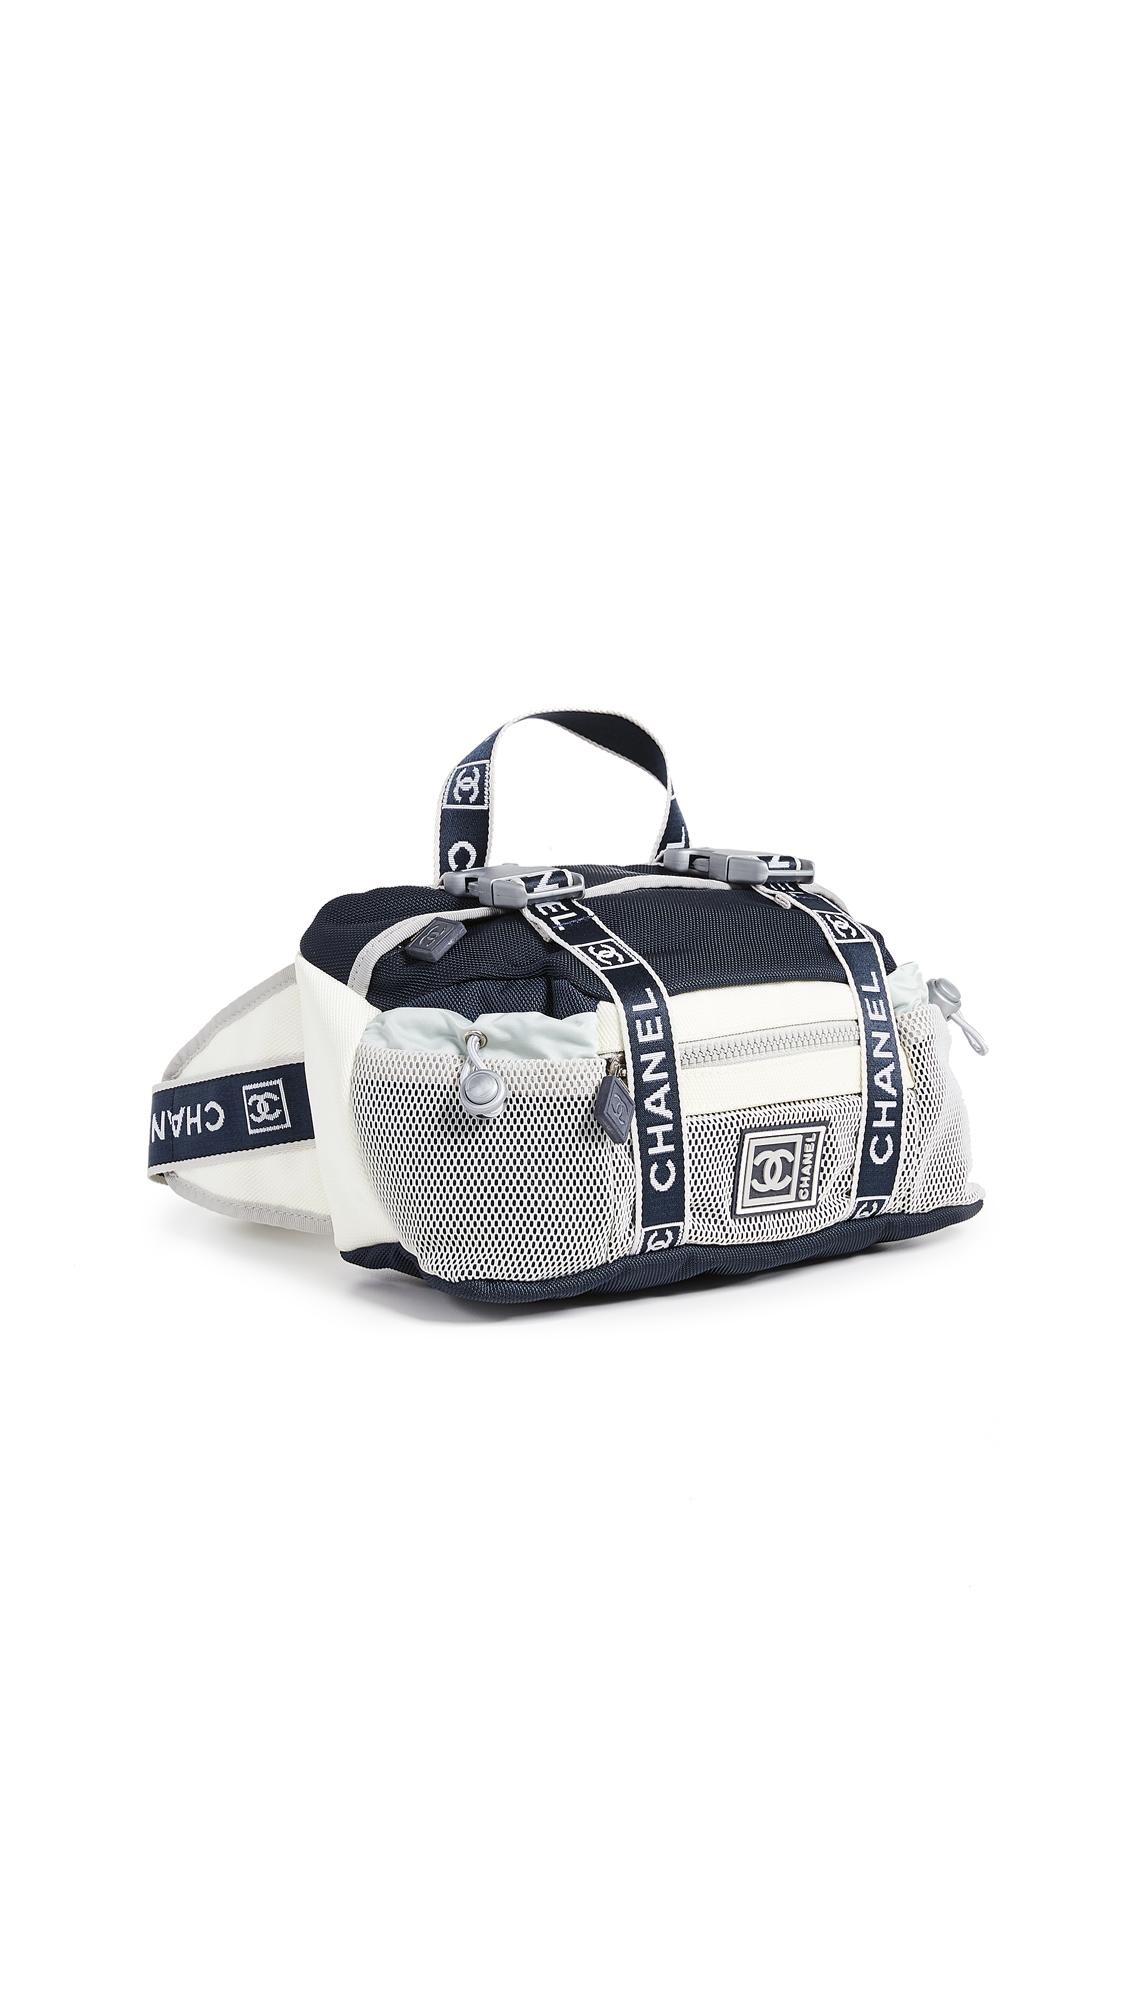 4772e2010fa1a0 What Goes Around Comes Around Chanel Sportline Waist Belt Bag in ...